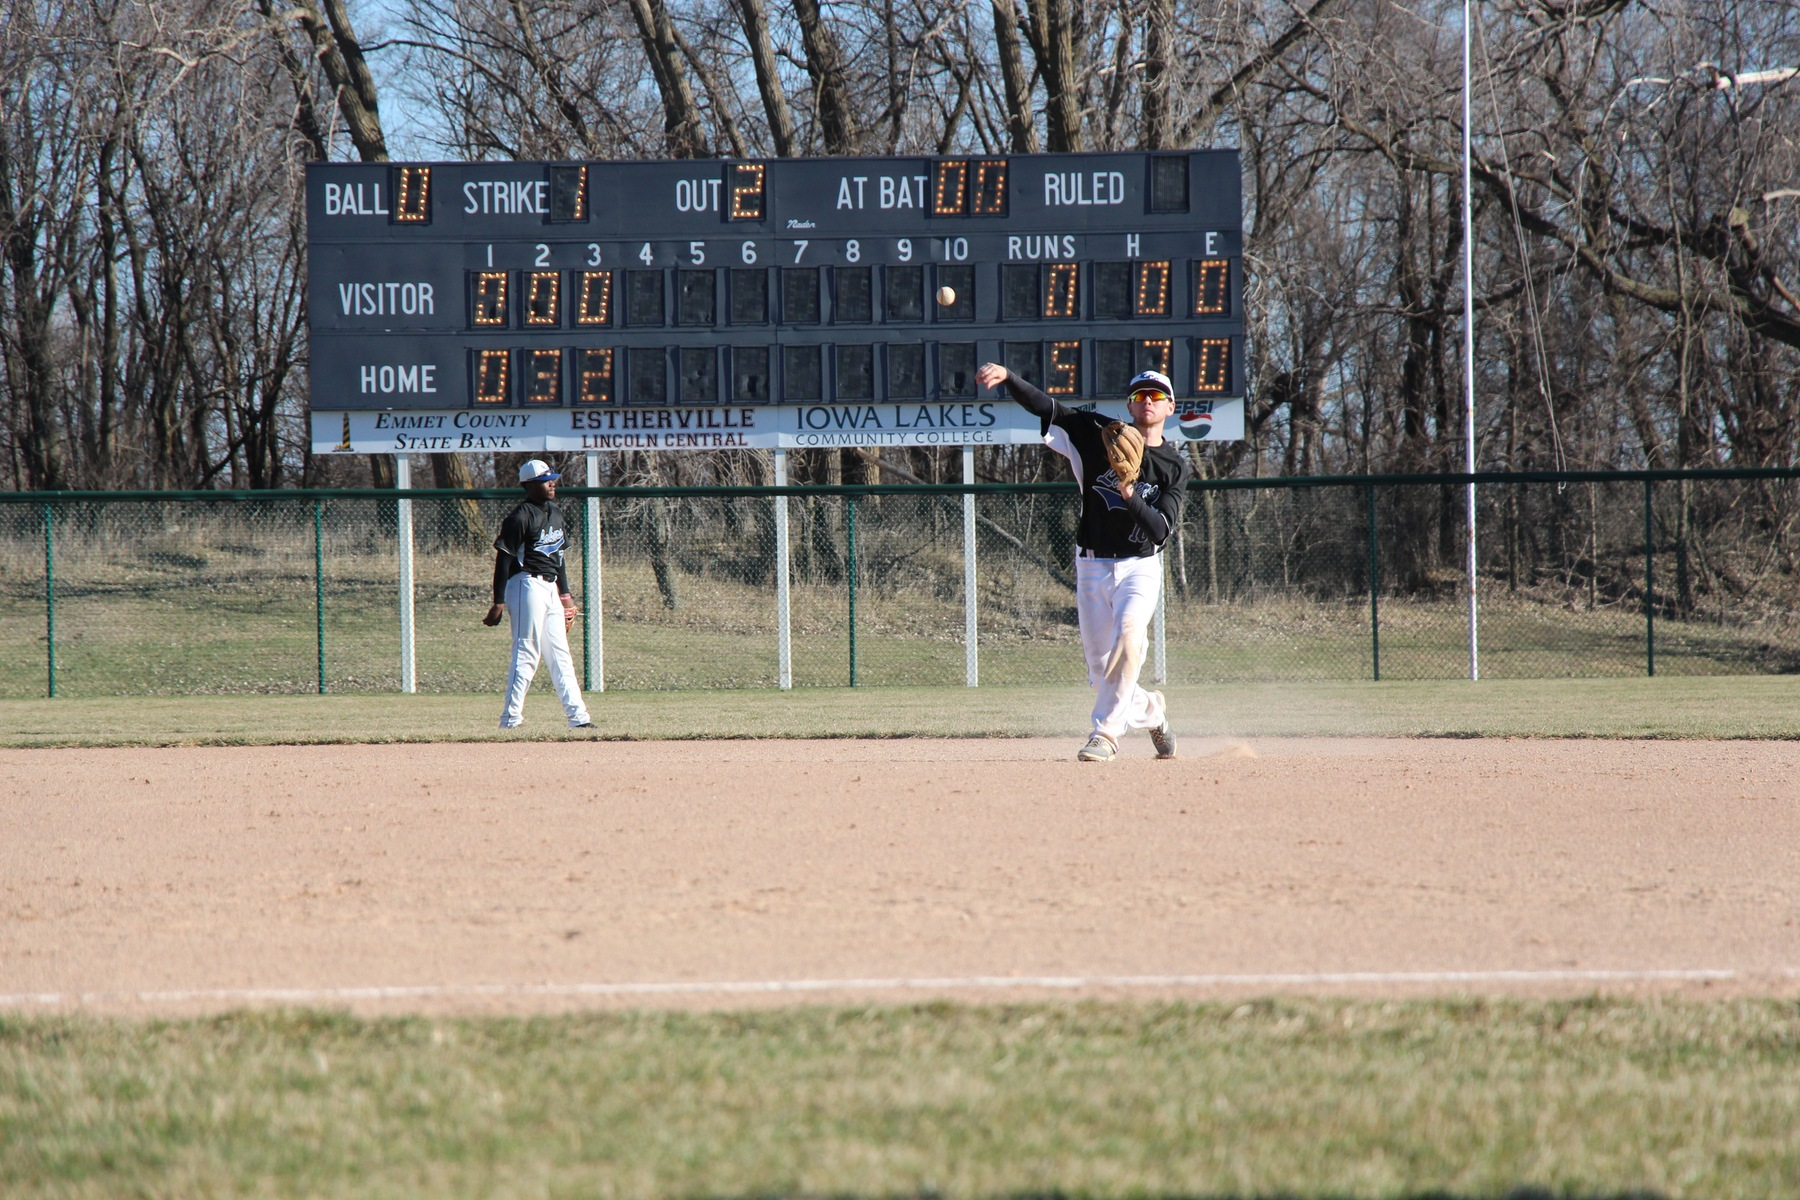 Baseball picksup two wins over Ontario